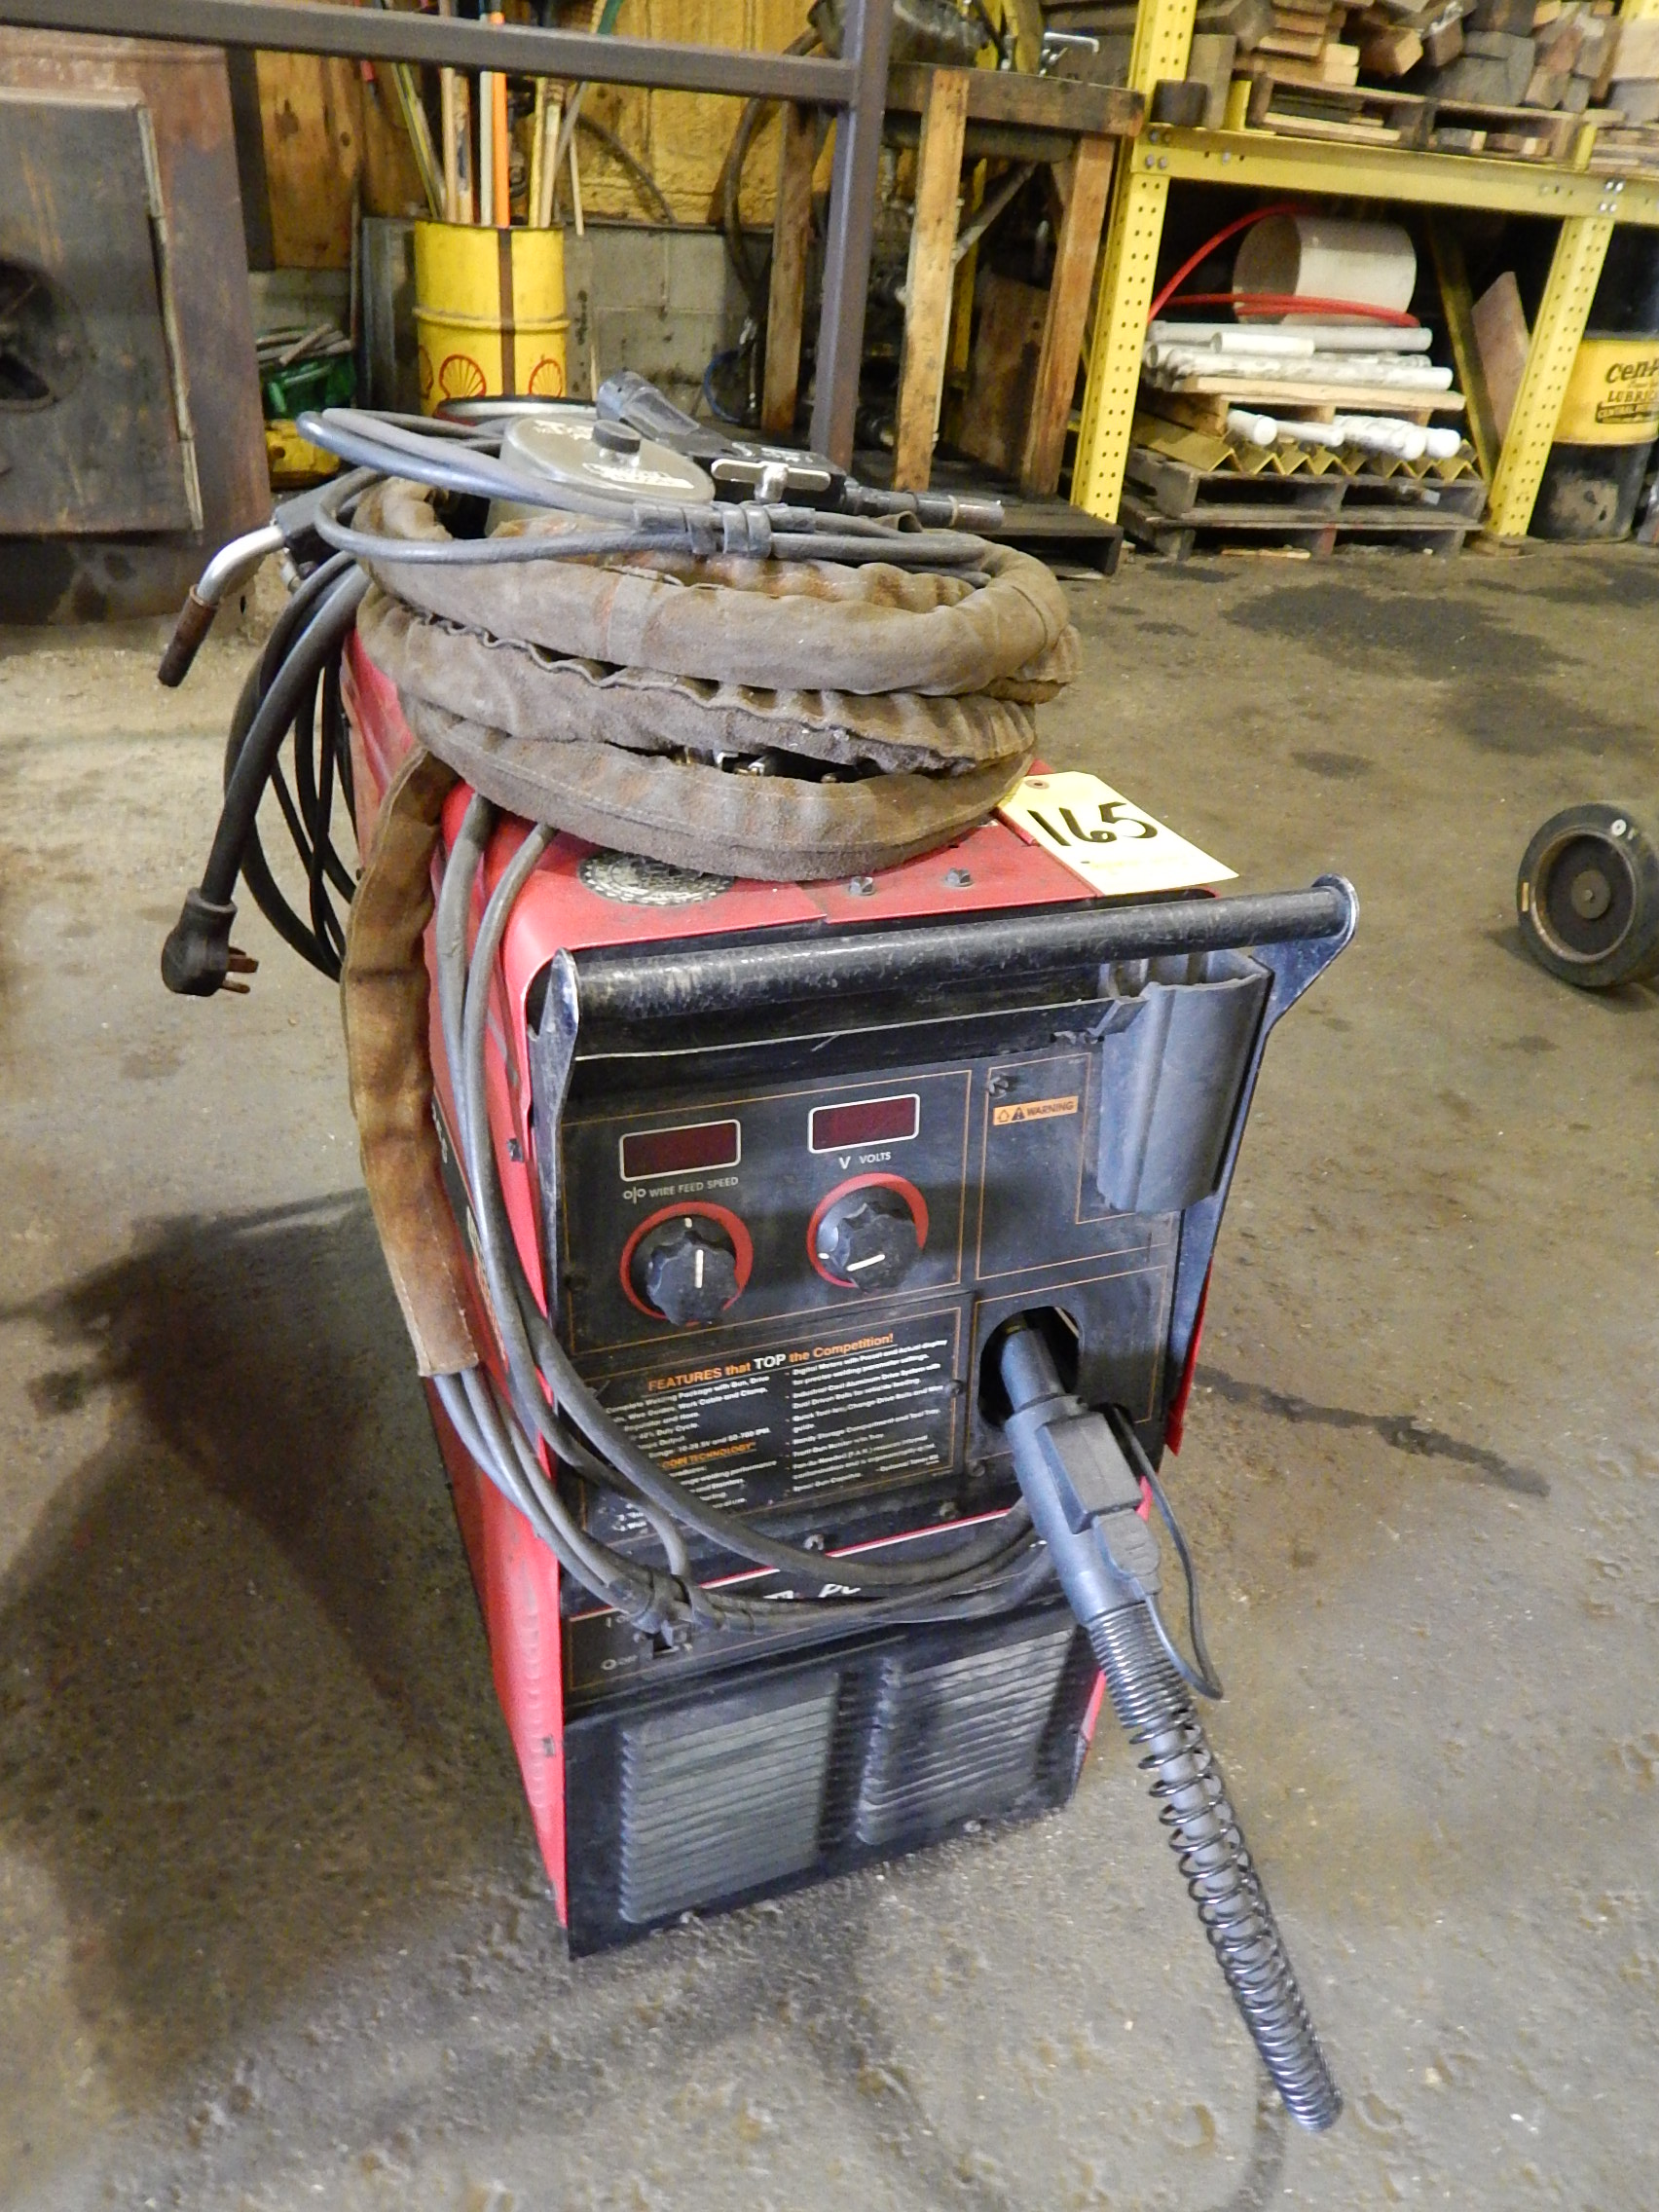 Lincoln Power Mig 255 Mig Welder SN U1000927994, with Lincoln Prince